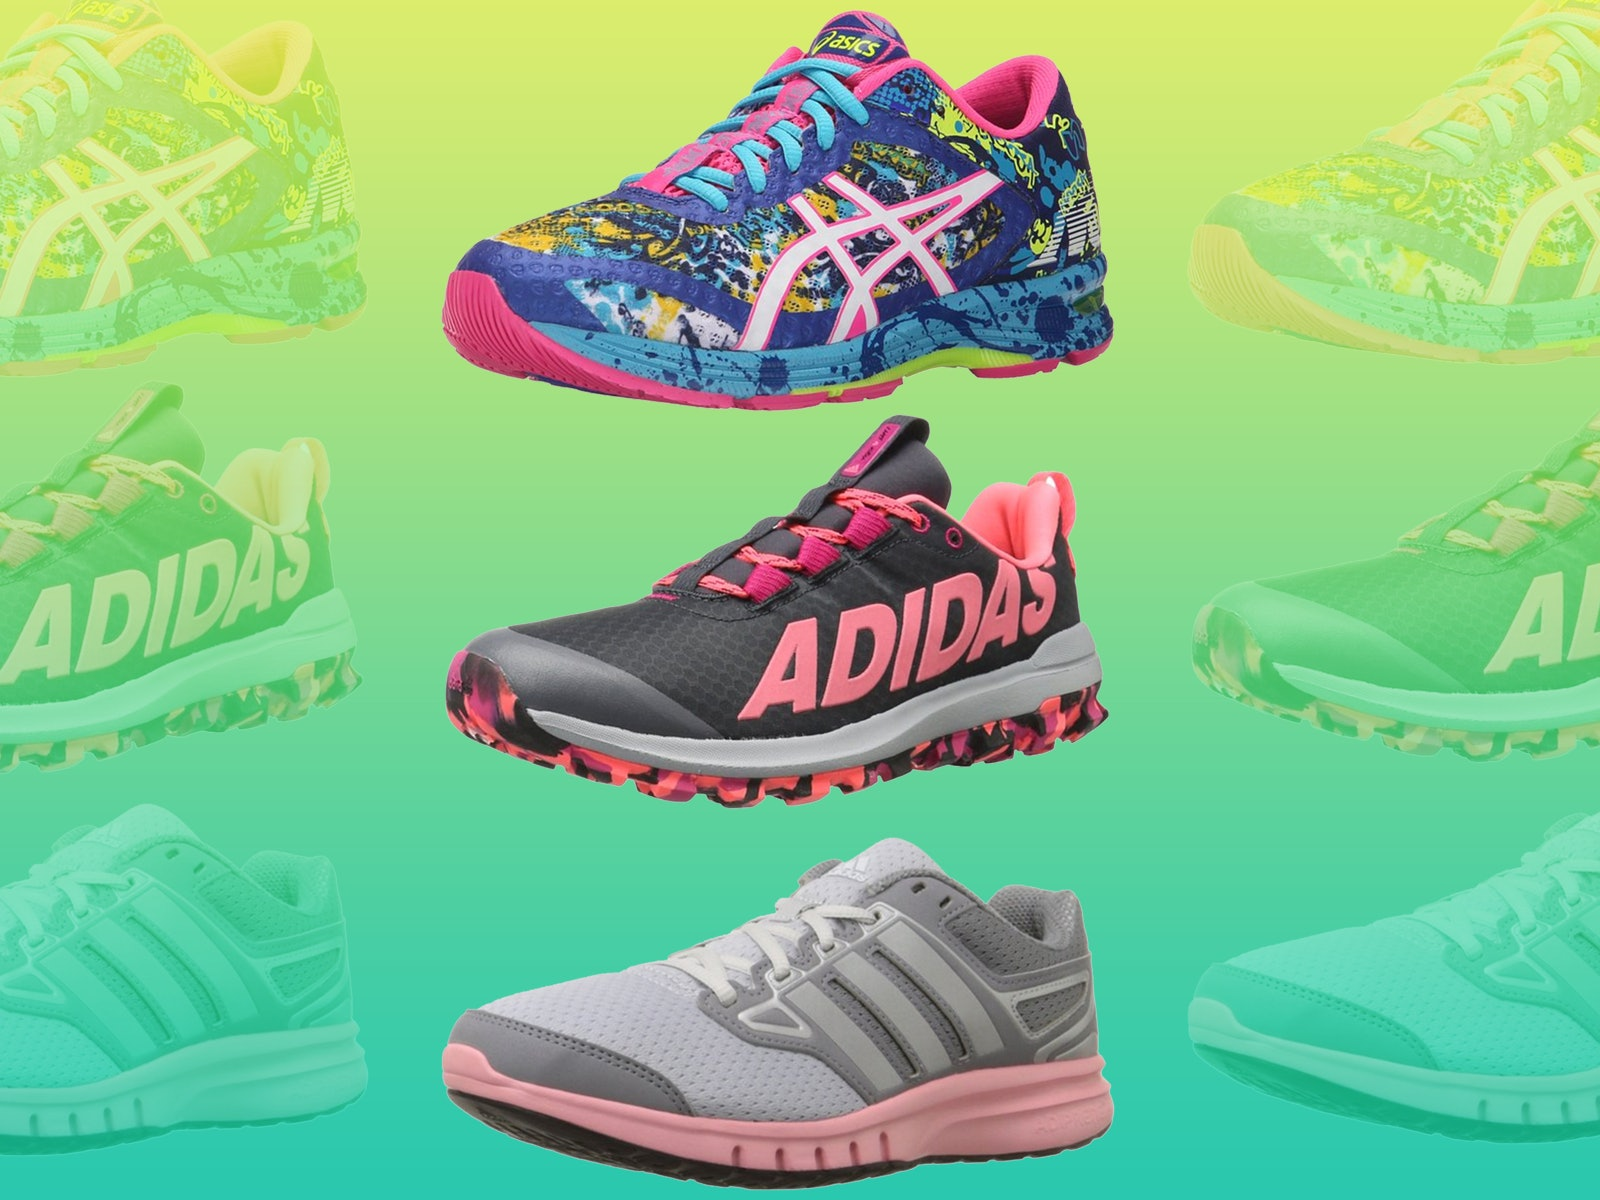 30d7a26a456 Best Amazon Prime Day Sneakers & Athletic Shoes On Sale